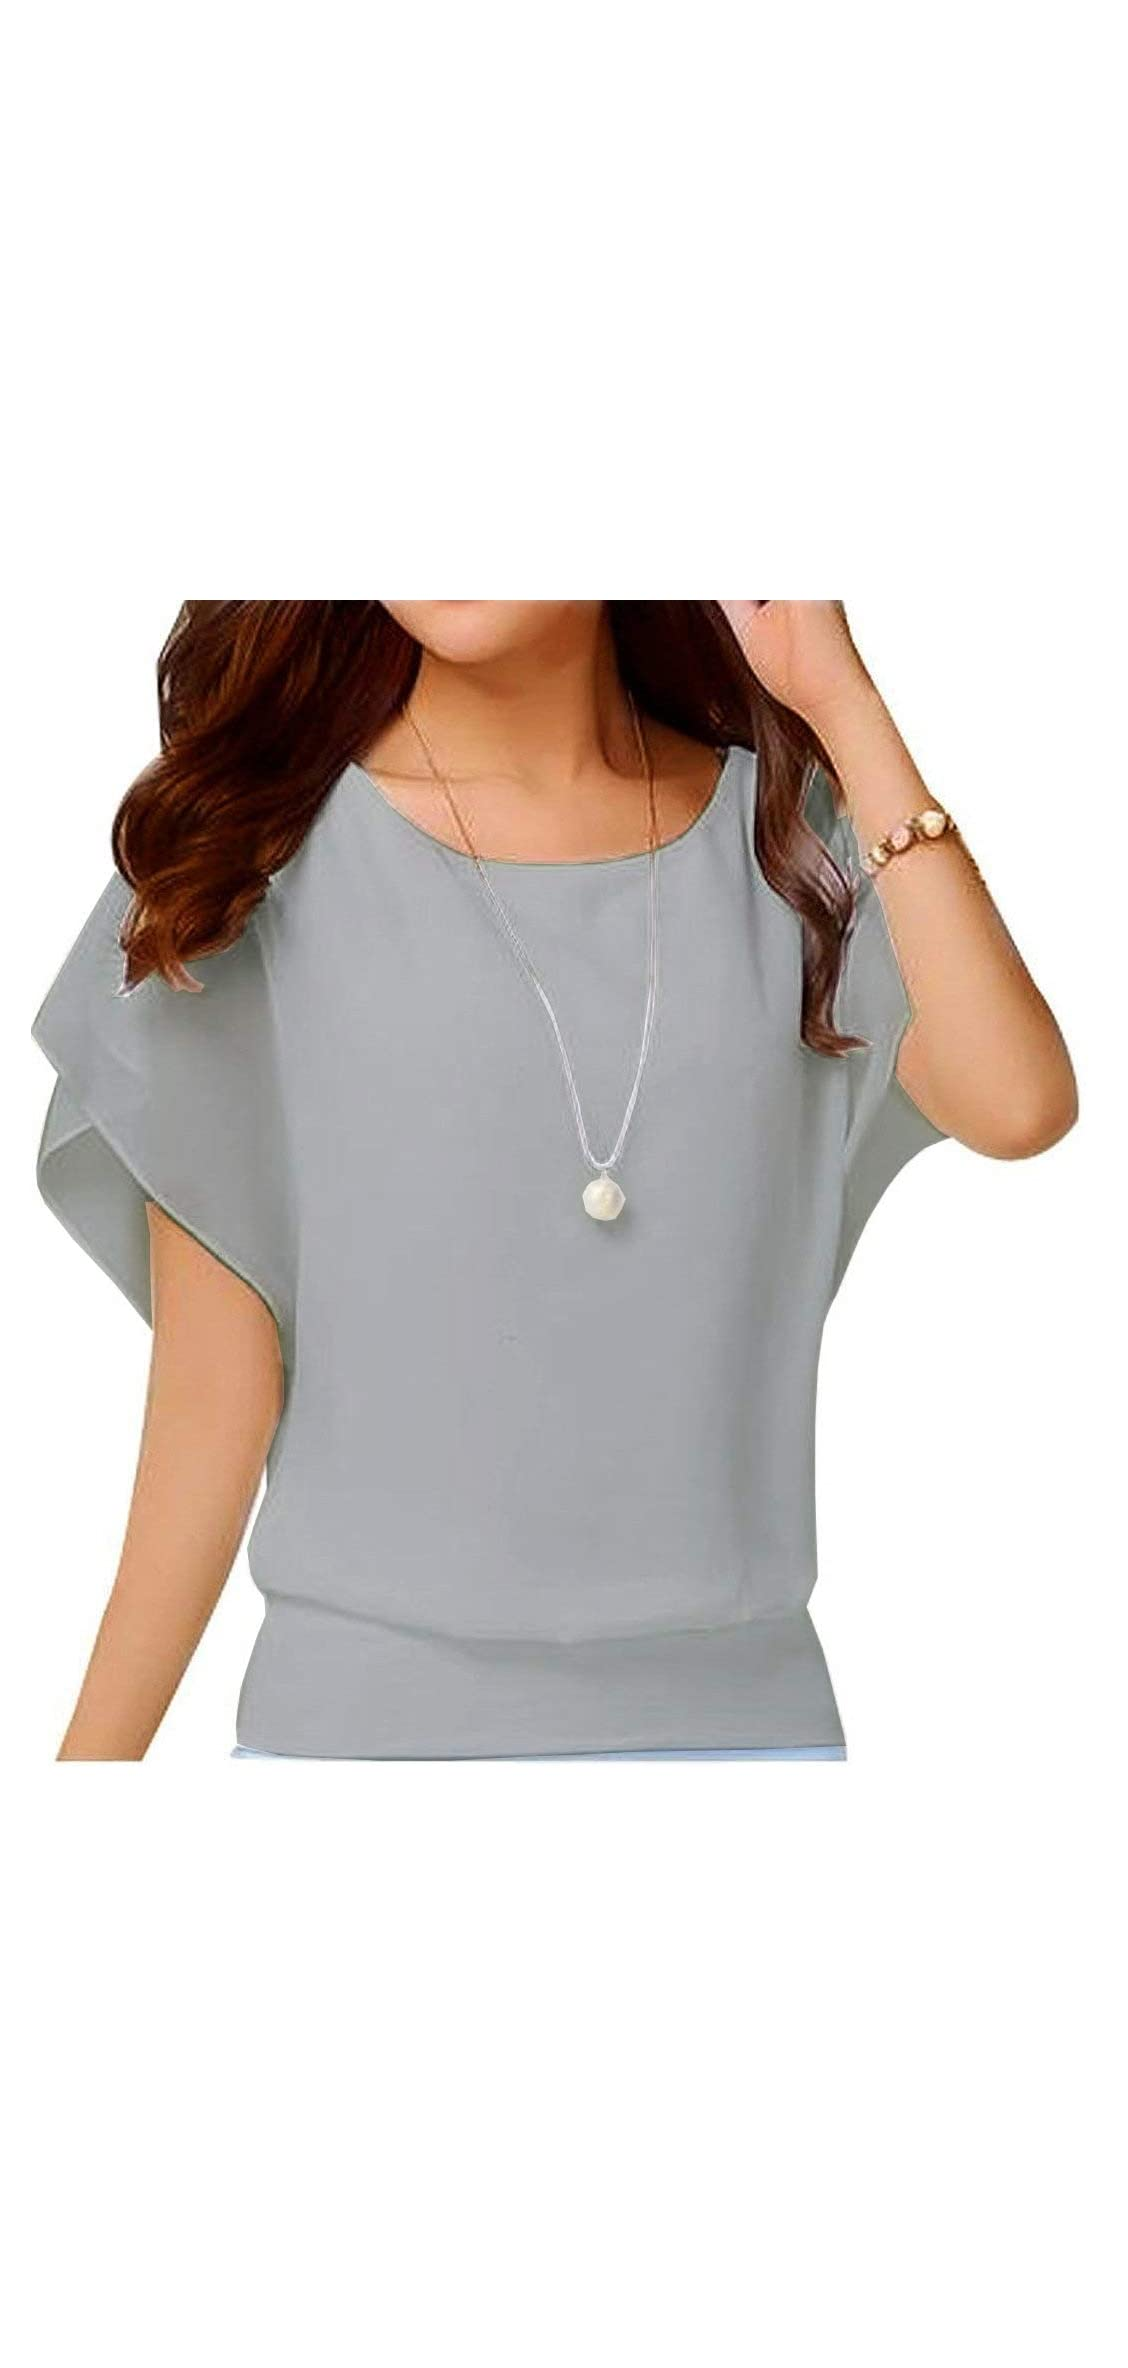 Women's Loose Casual Short Sleeve Chiffon Top T-shirt